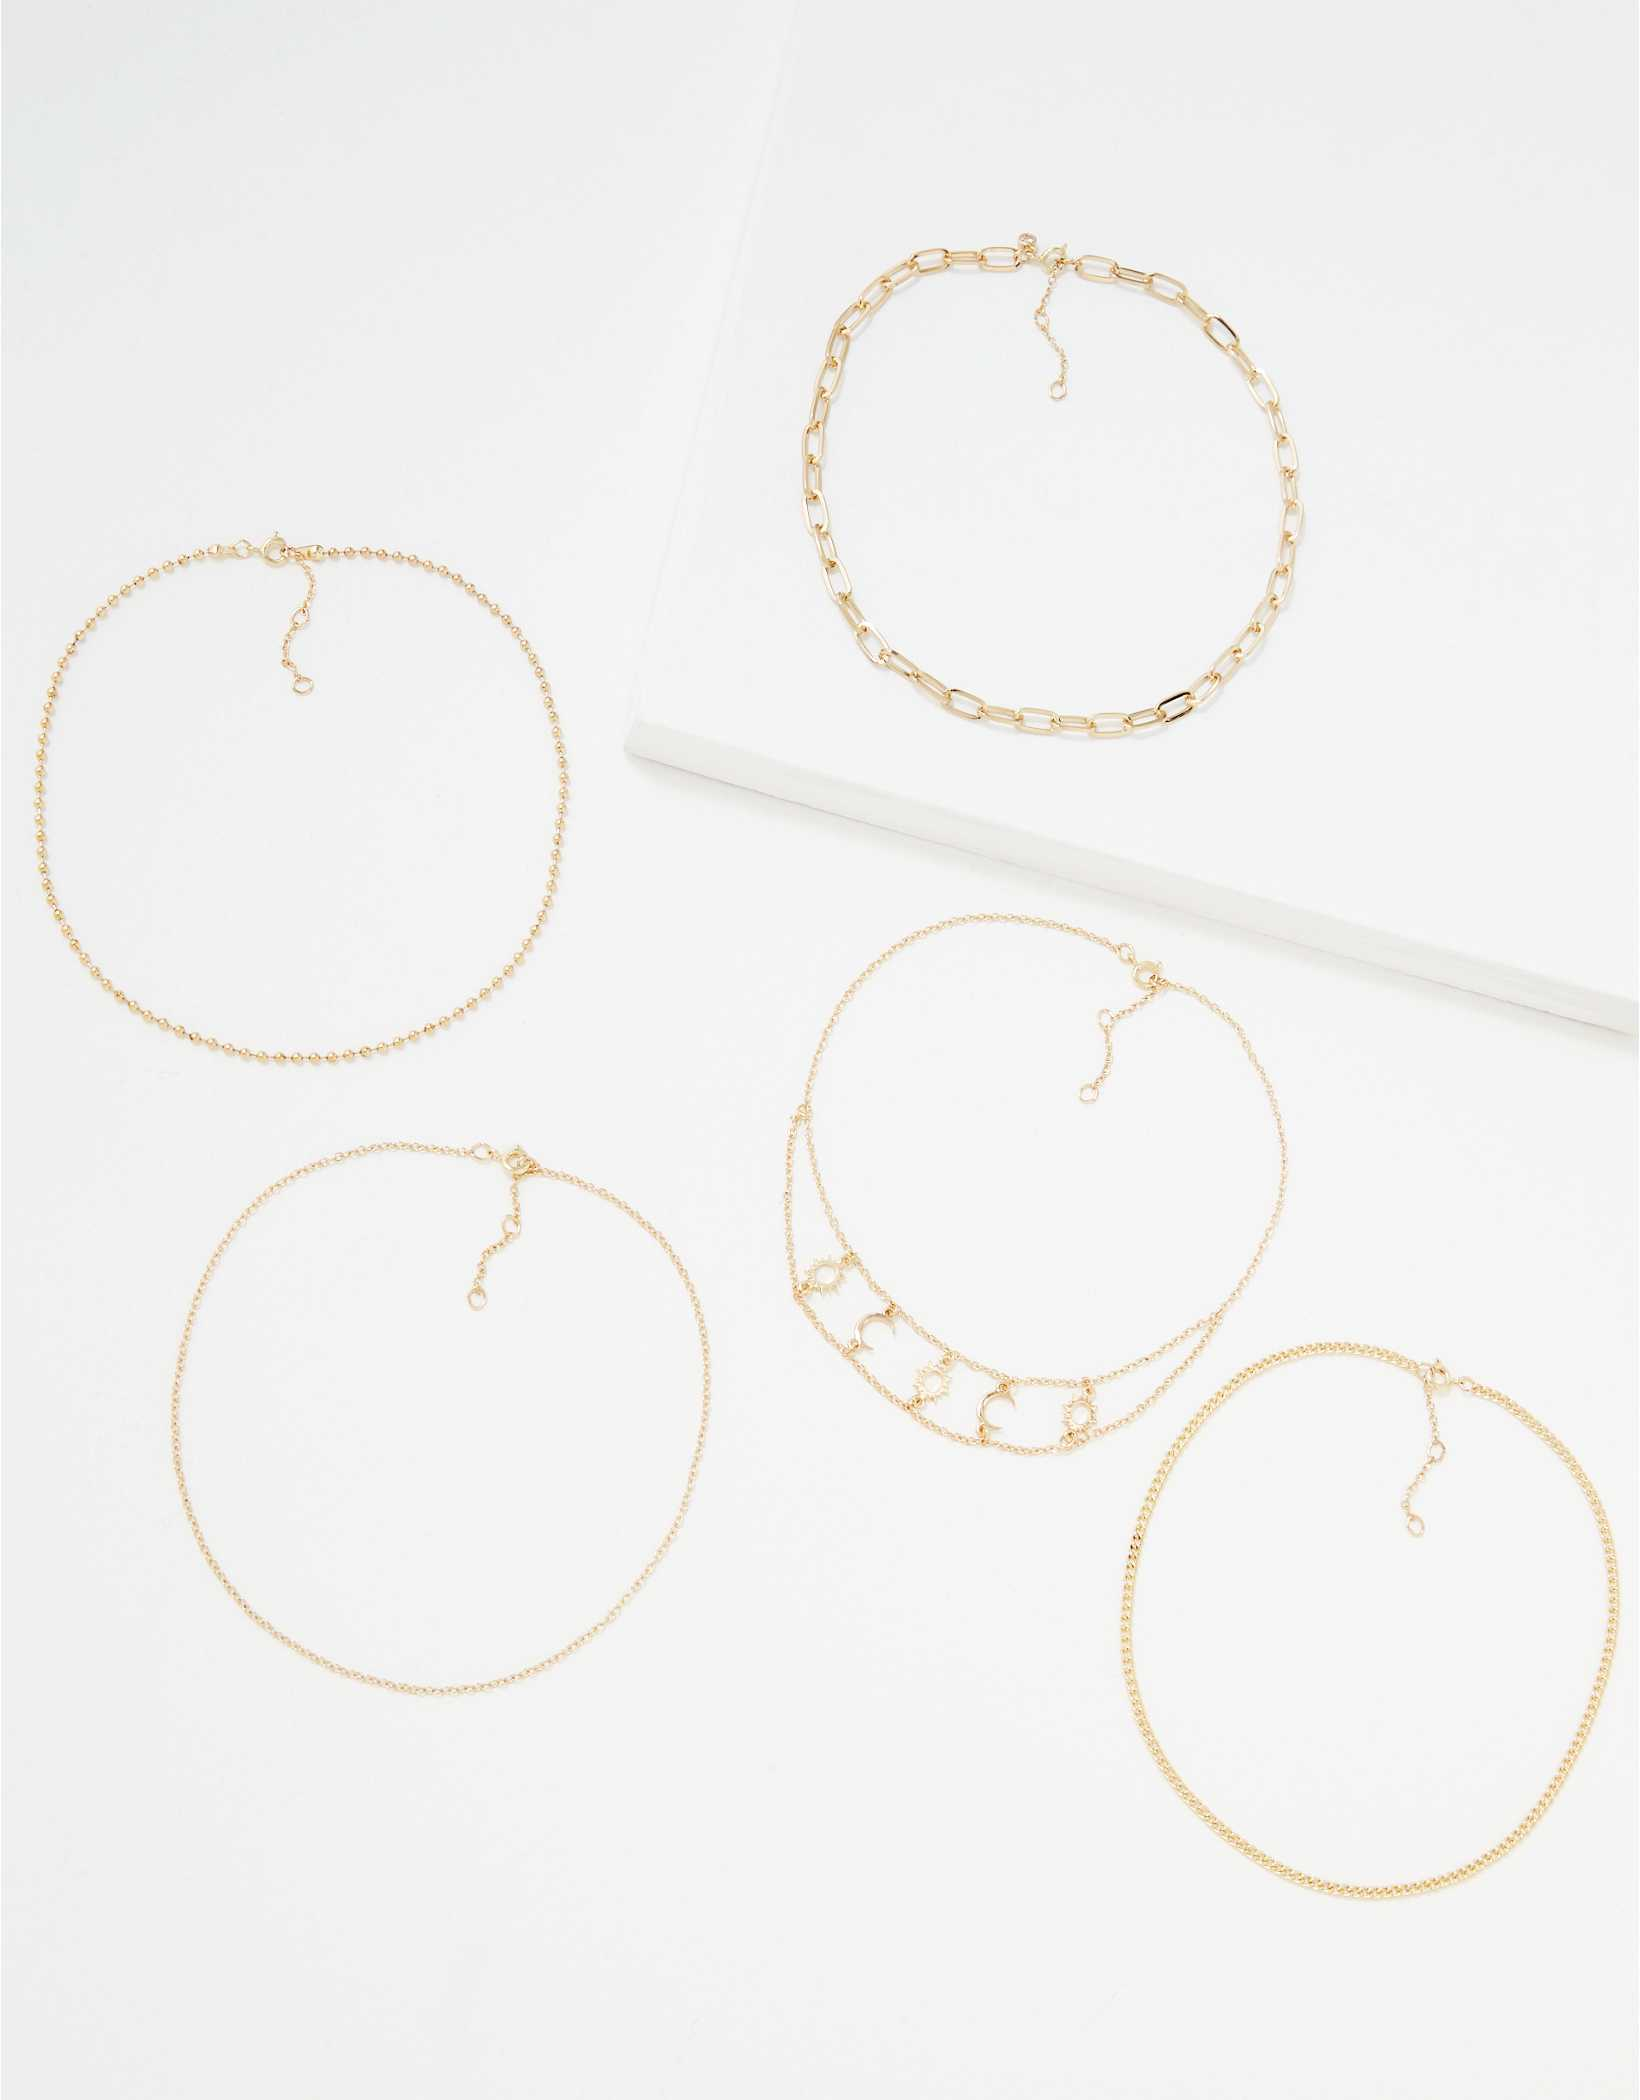 AEO Gold Moon Choker Necklaces 5-Pack